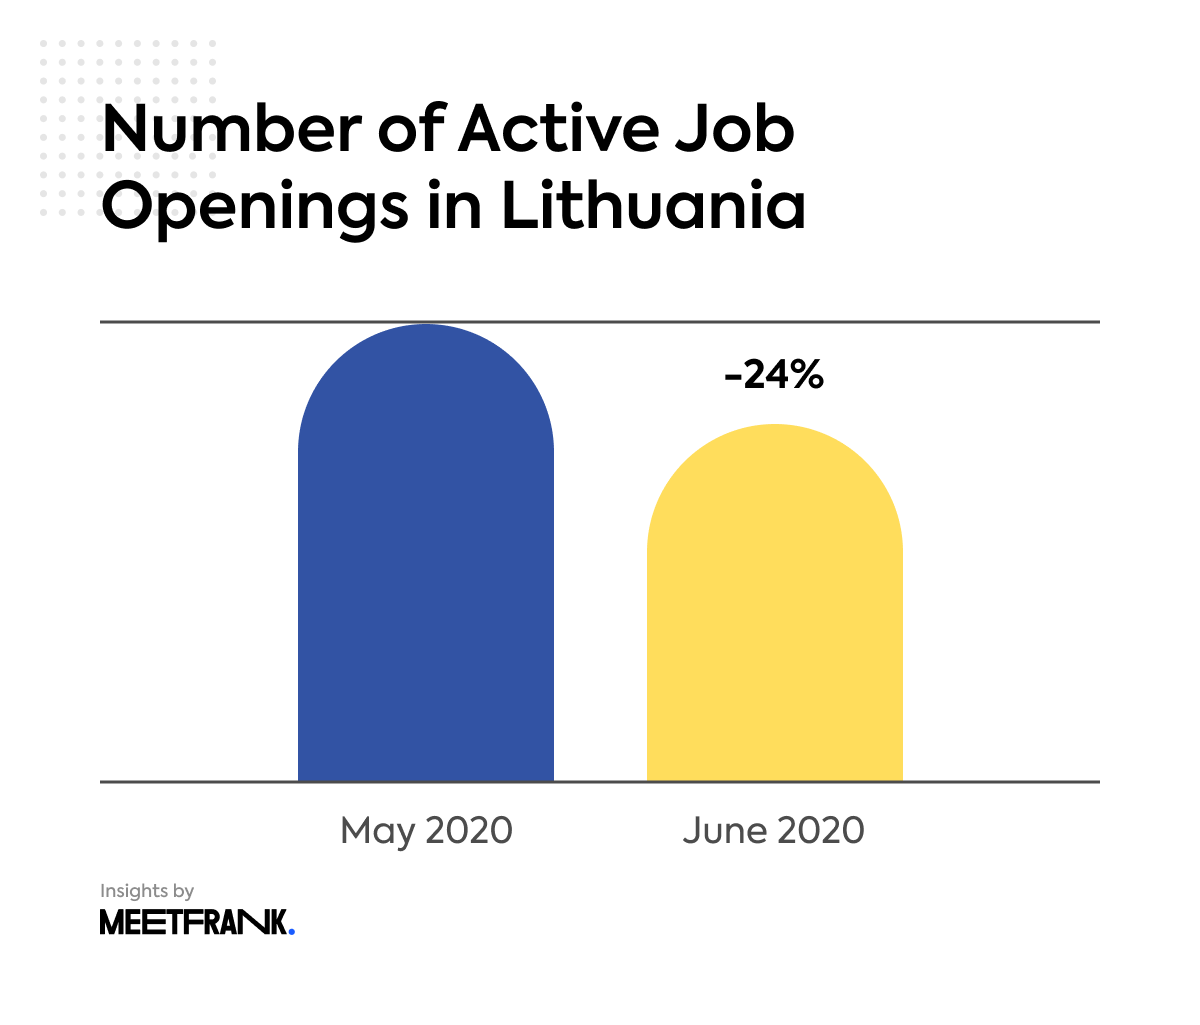 active job openings in Lithuania